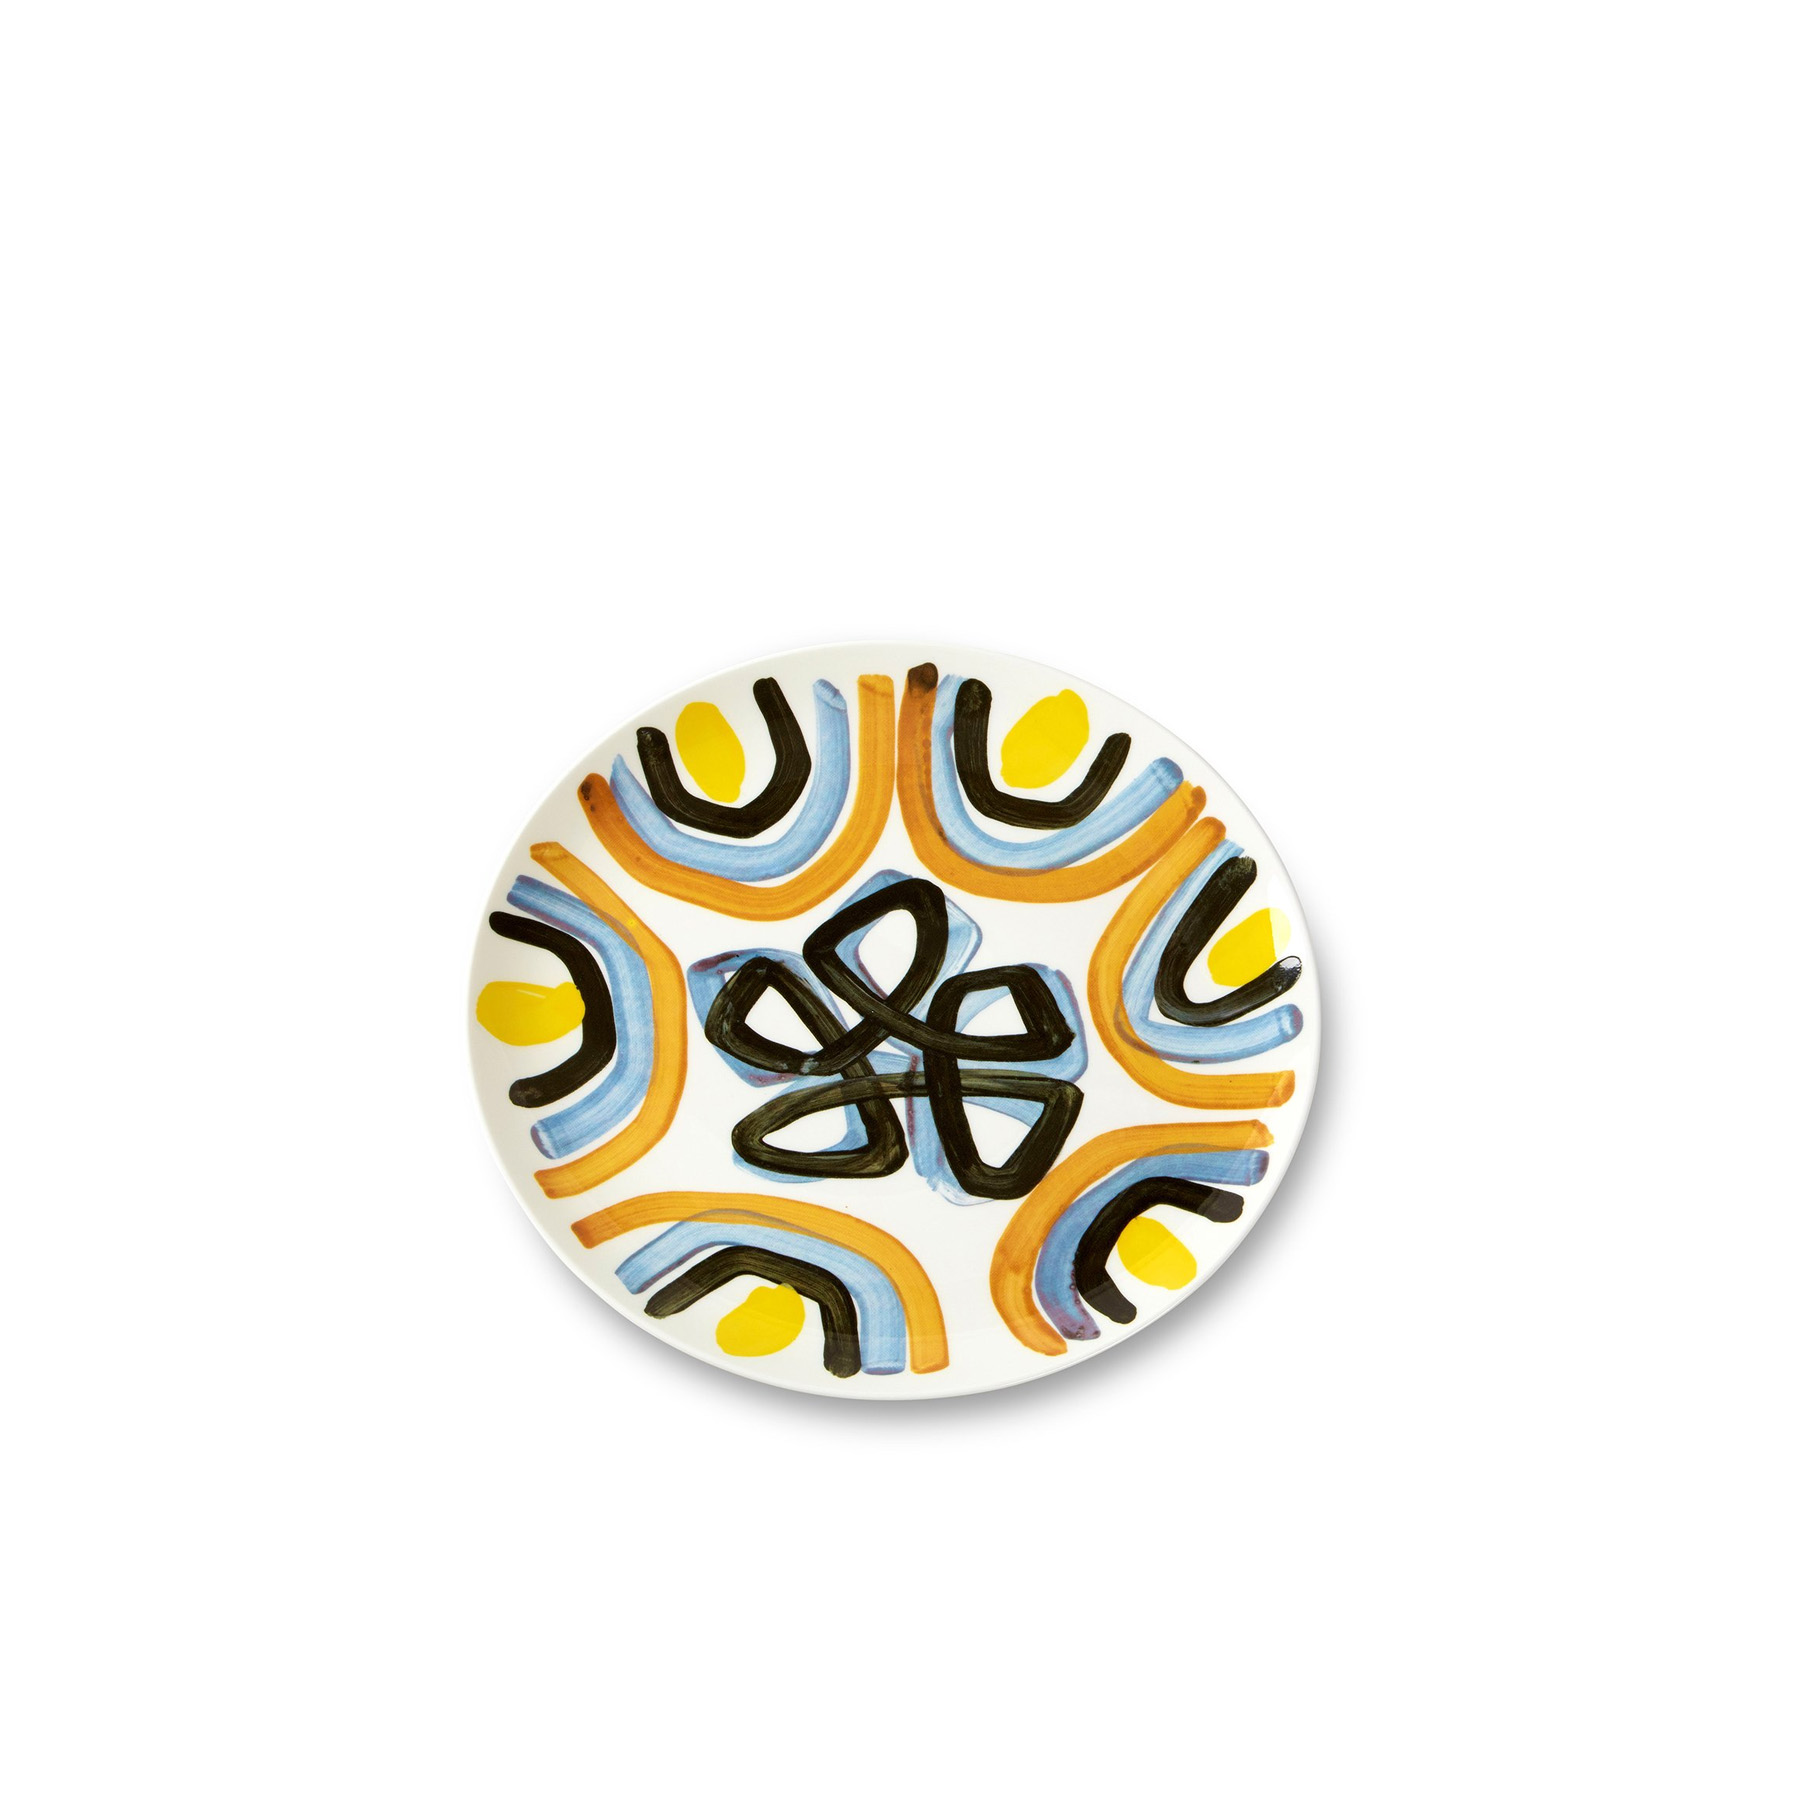 Yellow Flower Dinner Plate - Peter Pilotto's vision of womenswear embraces both new and classic perspectives on elegance. Otherworldly prints combine with soft sculptural shapes to form the handwriting of the design duo. The fine bone china table ware collection celebrates their aesthetic with the wonderful use of pattern and colour.